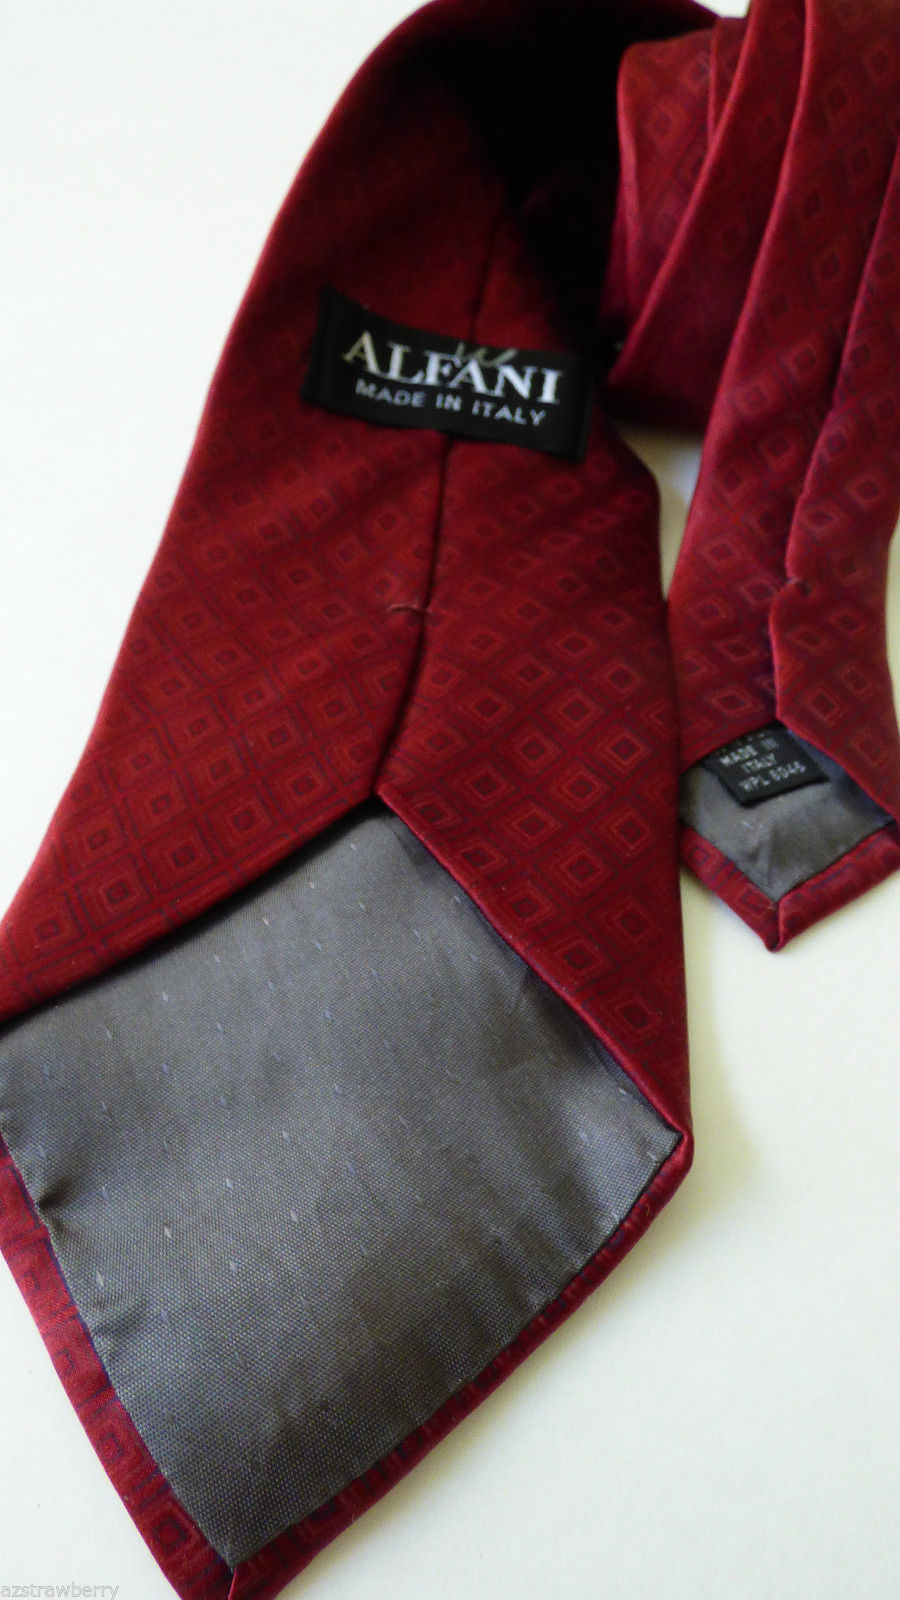 "ALFANI made in Italy Silk Necktie Tie Diamong pattern Burdundy red color 60""L"